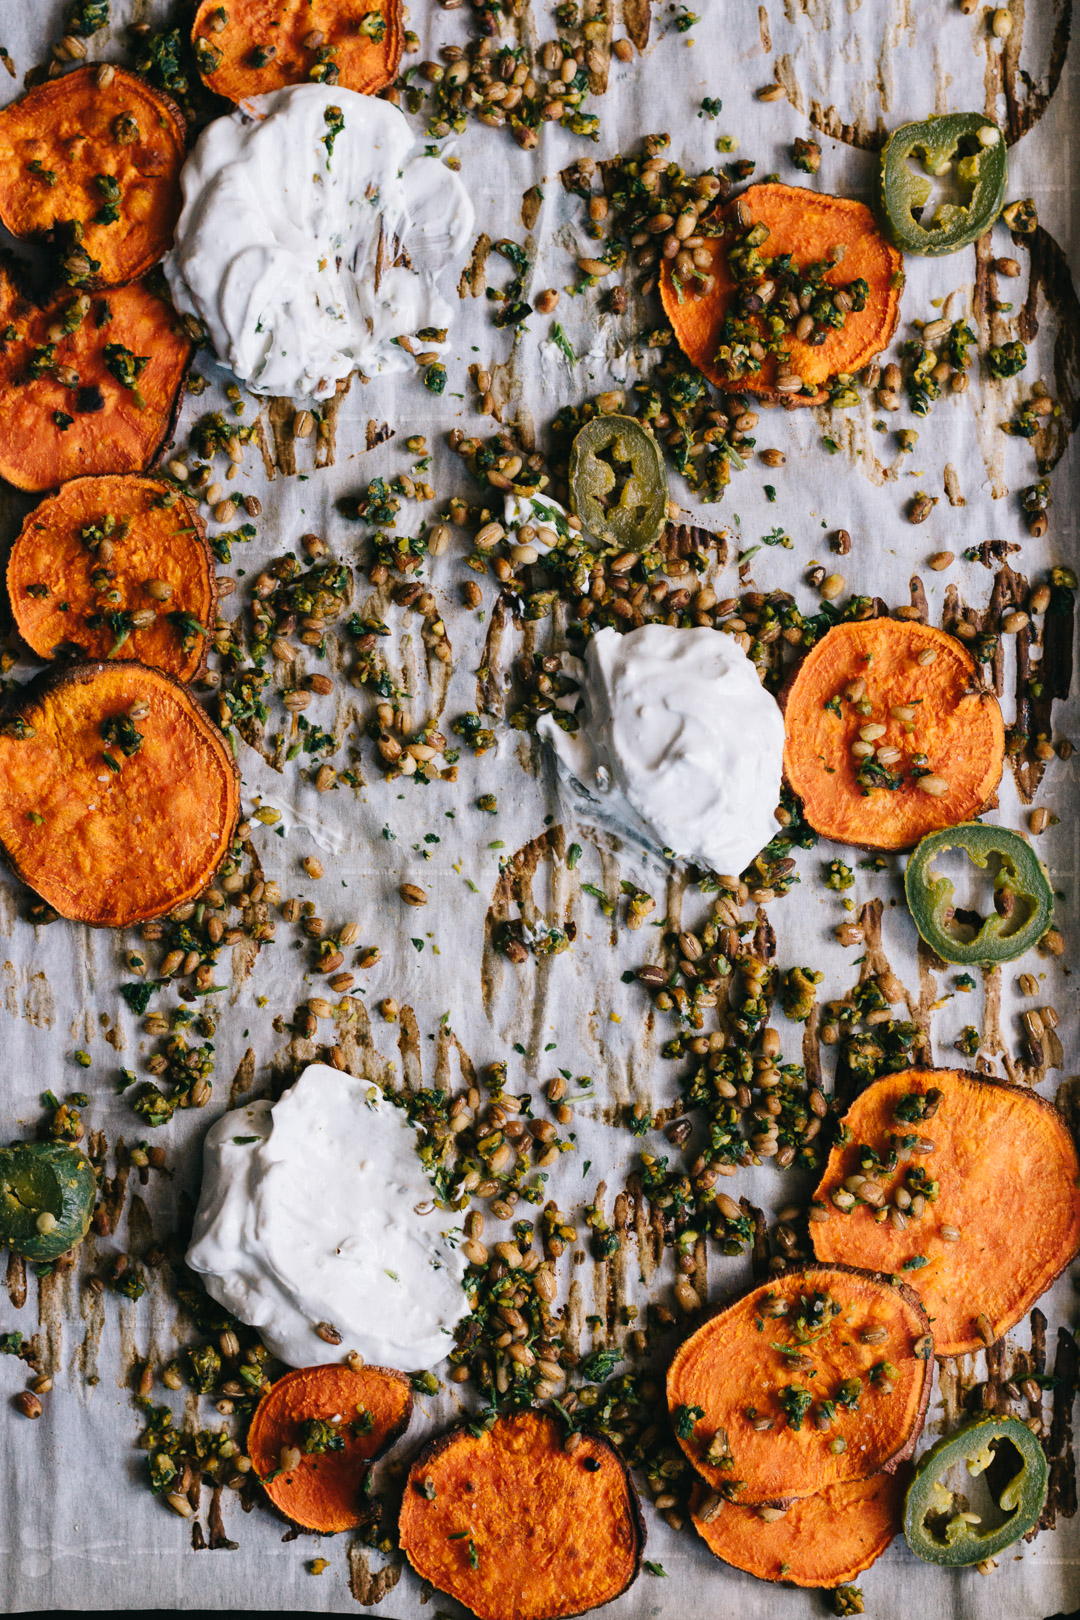 Overhead shot of parchment covered baking sheet that's been used as a serving platter people have eaten off of. There are a few sweet potato crisps leftover, gremolata and barley scattered everywhere, and dollops of dip that have been used.